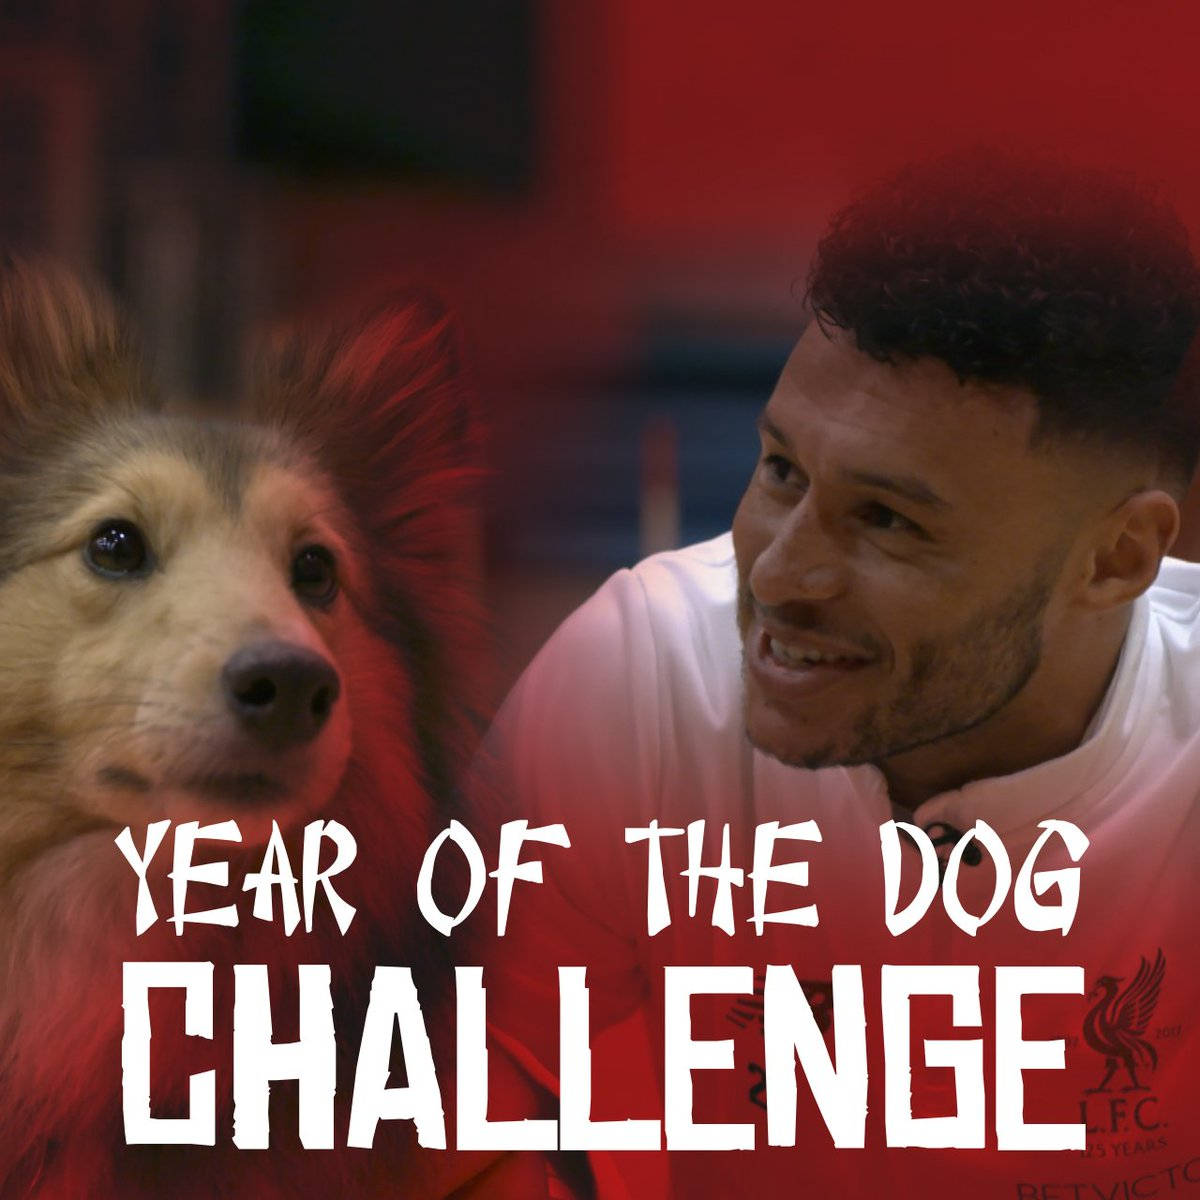 Ingsy, youre a very harsh critic! 😂  To celebrate the #YearOfTheDog, @Alex_OxChambo, @LorisKarius, @lfc18alberto and @IngsDanny took on the ultimate K9 challenge.  Full video: lfc.tv/AR8R